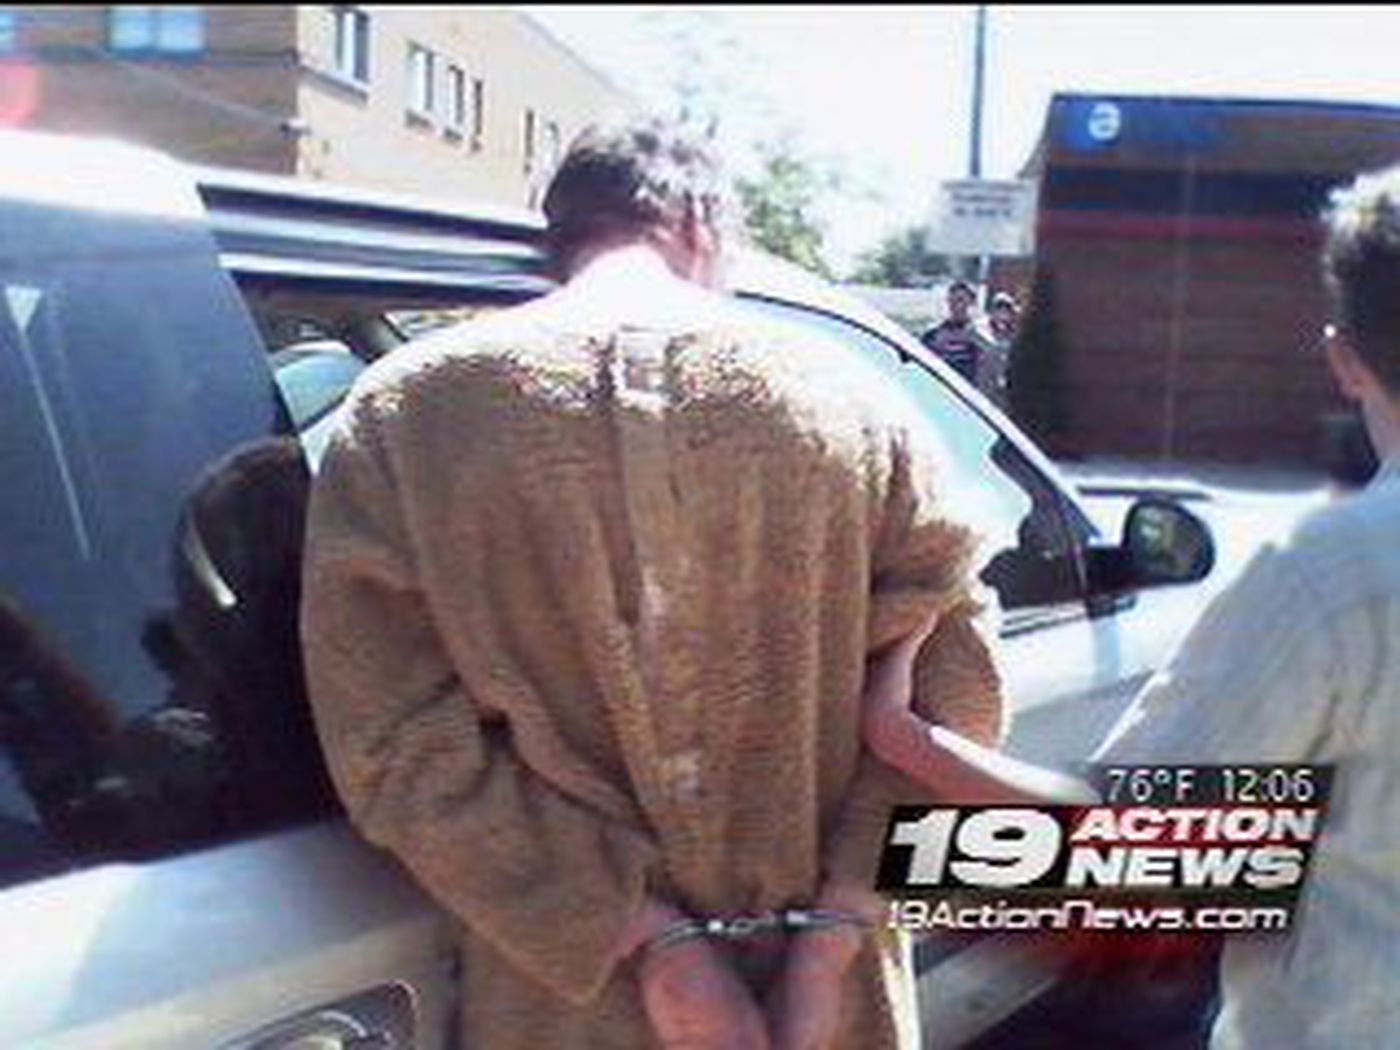 Rape Suspect Arrested While Wearing Lion Costume